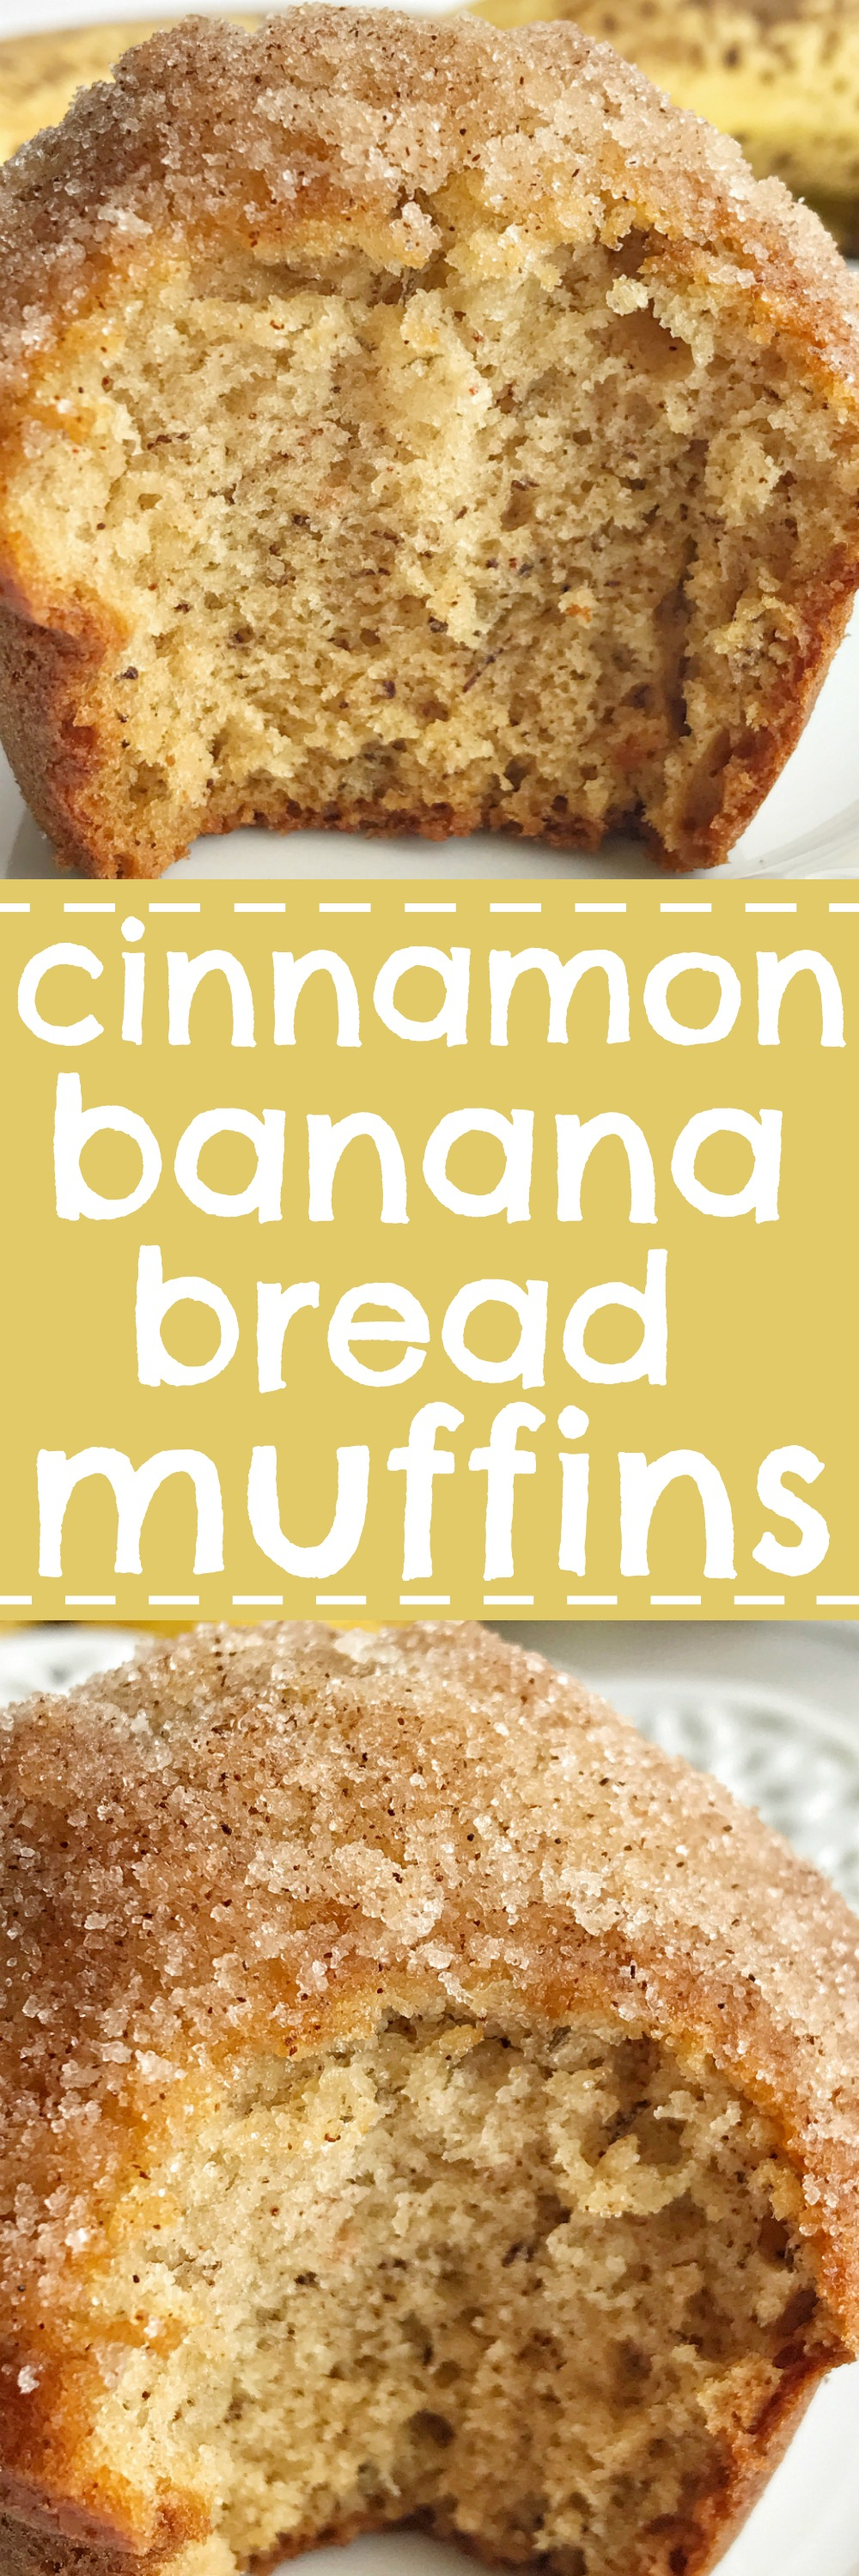 Cinnamon banana bread muffins together as family cinnamon banana bread muffins taste like banana bread in muffin form they are perfectly light forumfinder Gallery